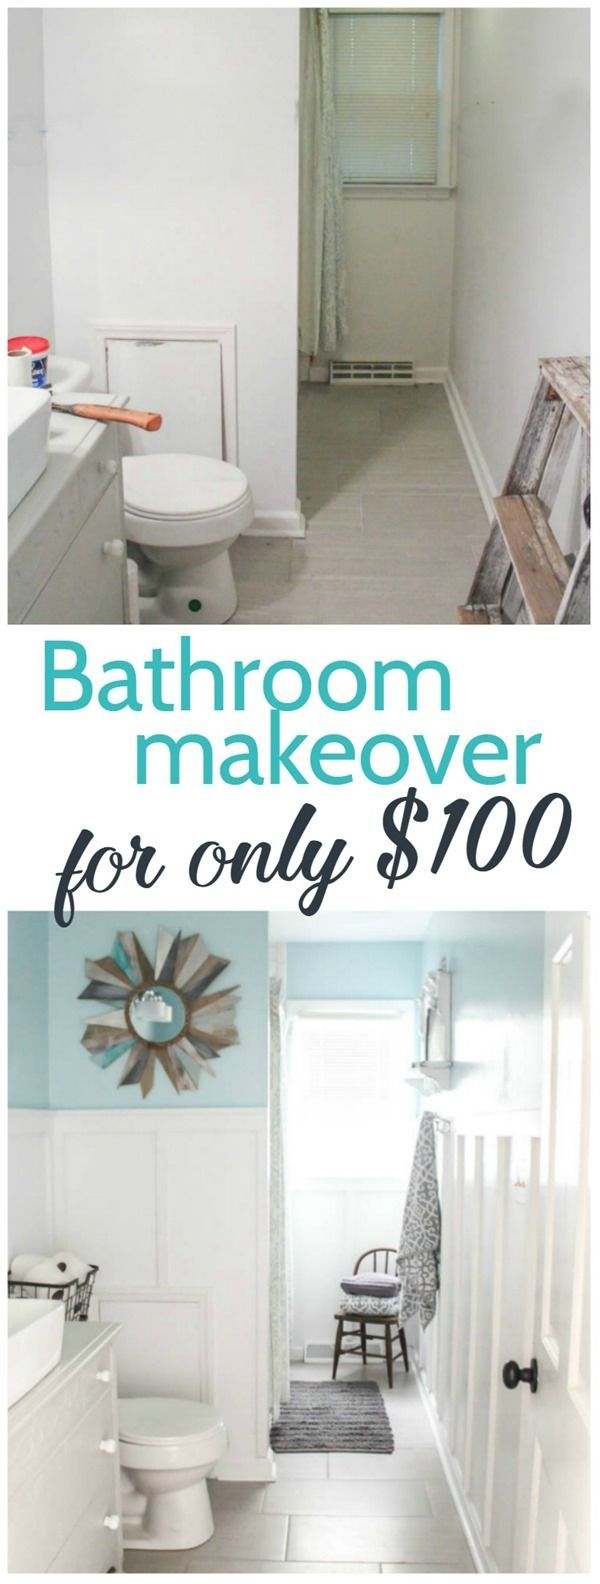 modern farmhouse bathroom, inexpensive bathroom makeover, vintage modern bathroom, board and batten, diy bathroom renovation, blue and white bathroom